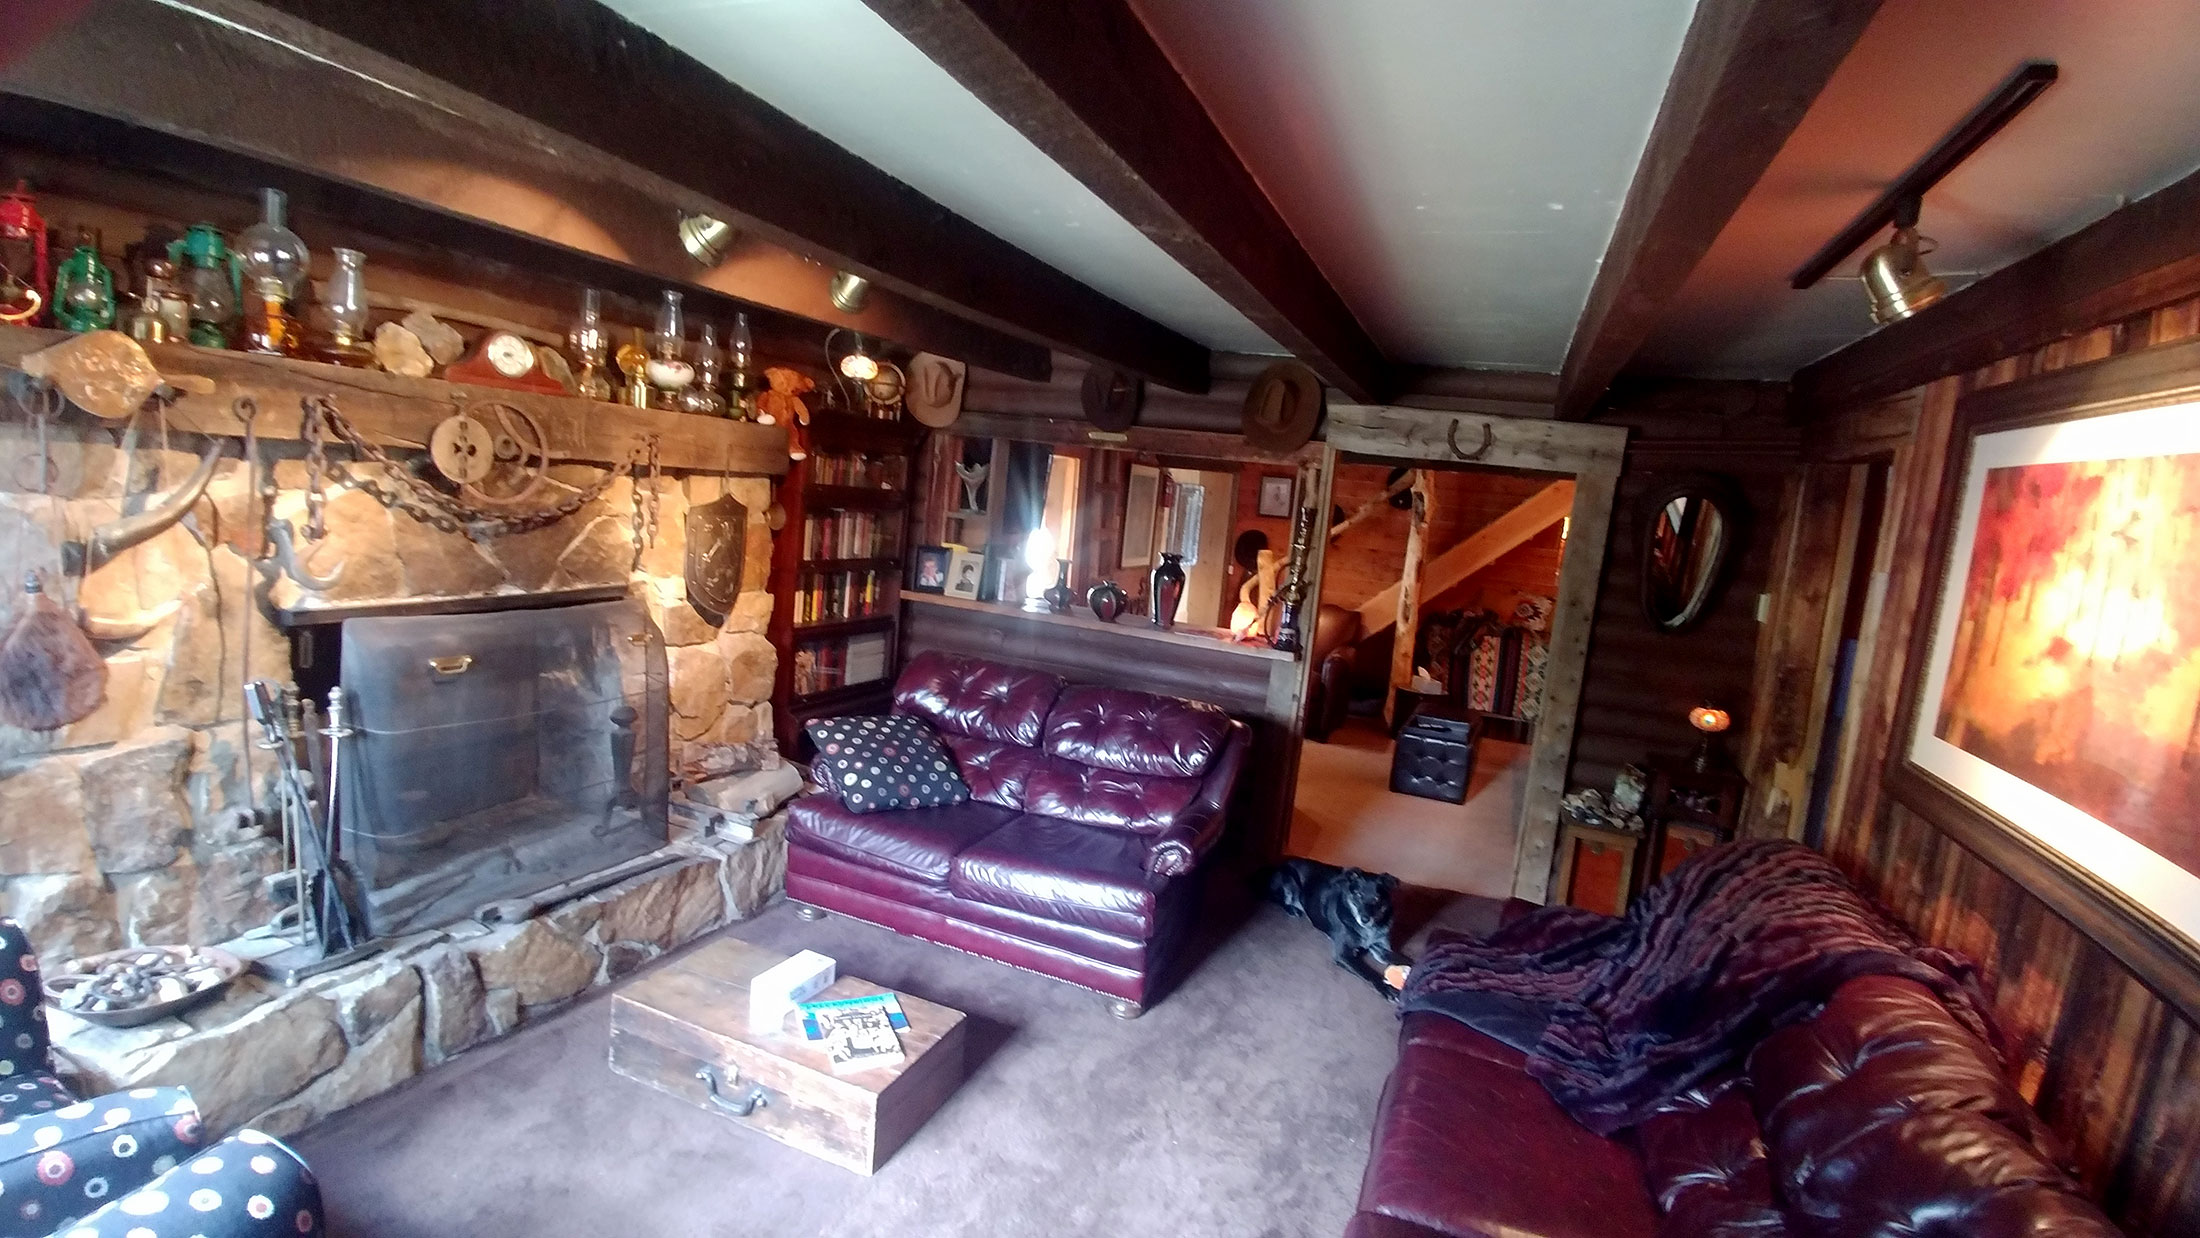 The fireplace room at the Bunk House Lodge in Breckenridge, Colorado.